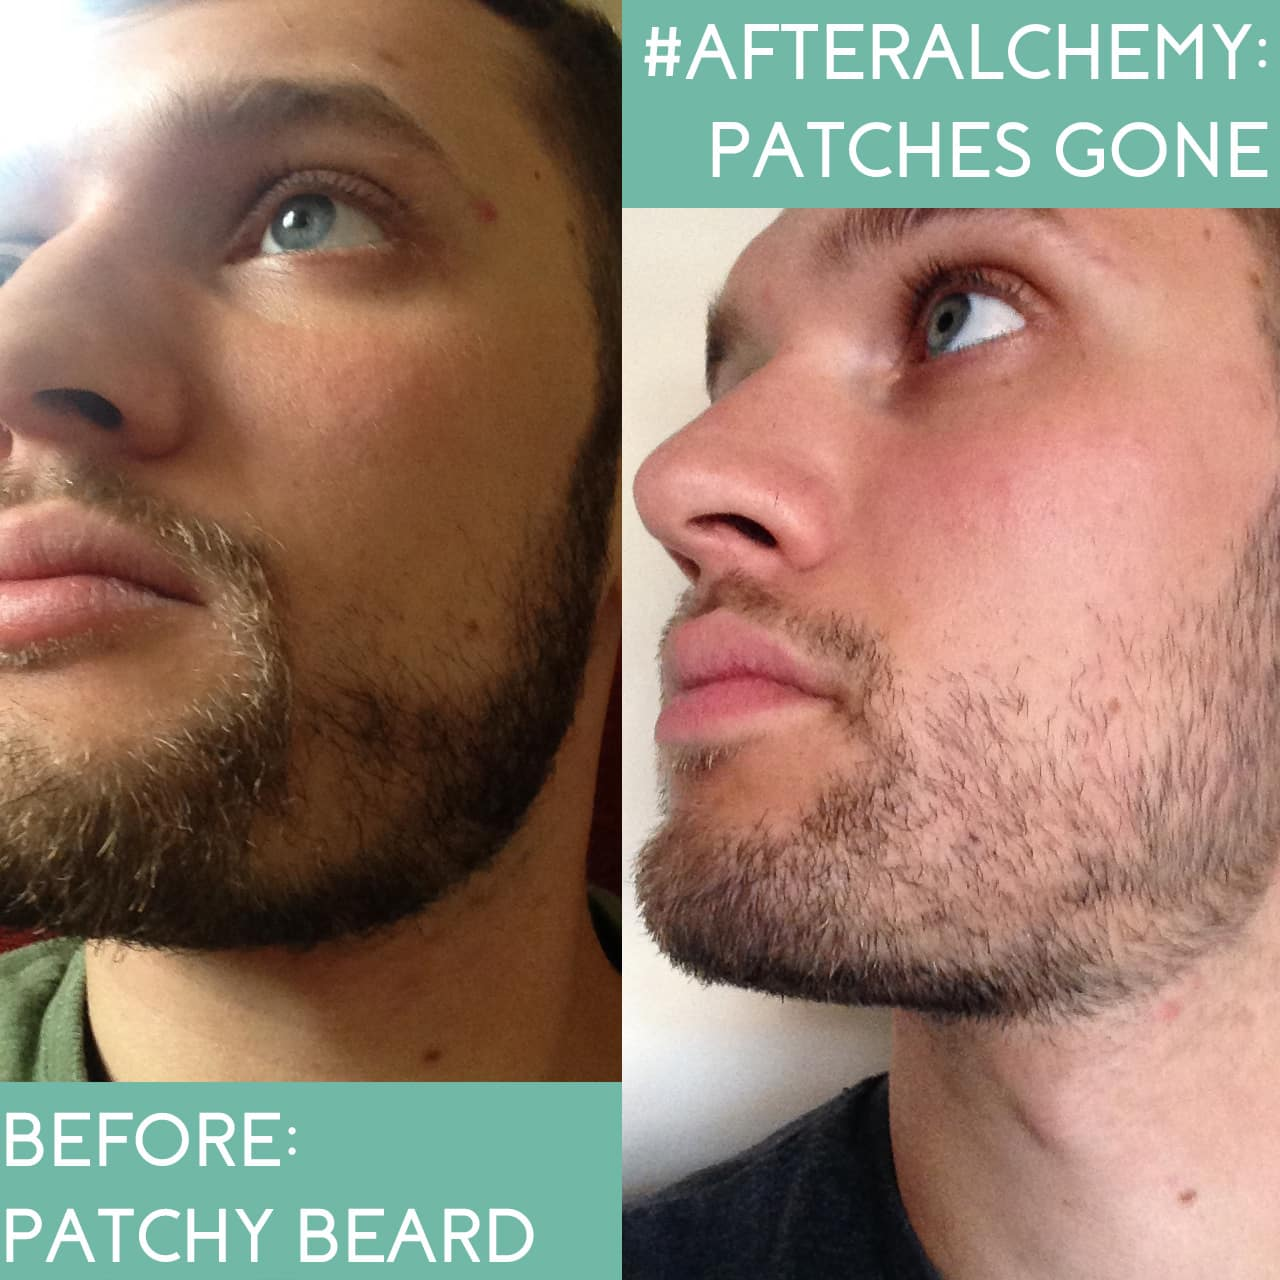 castor oil for beard before and after 1